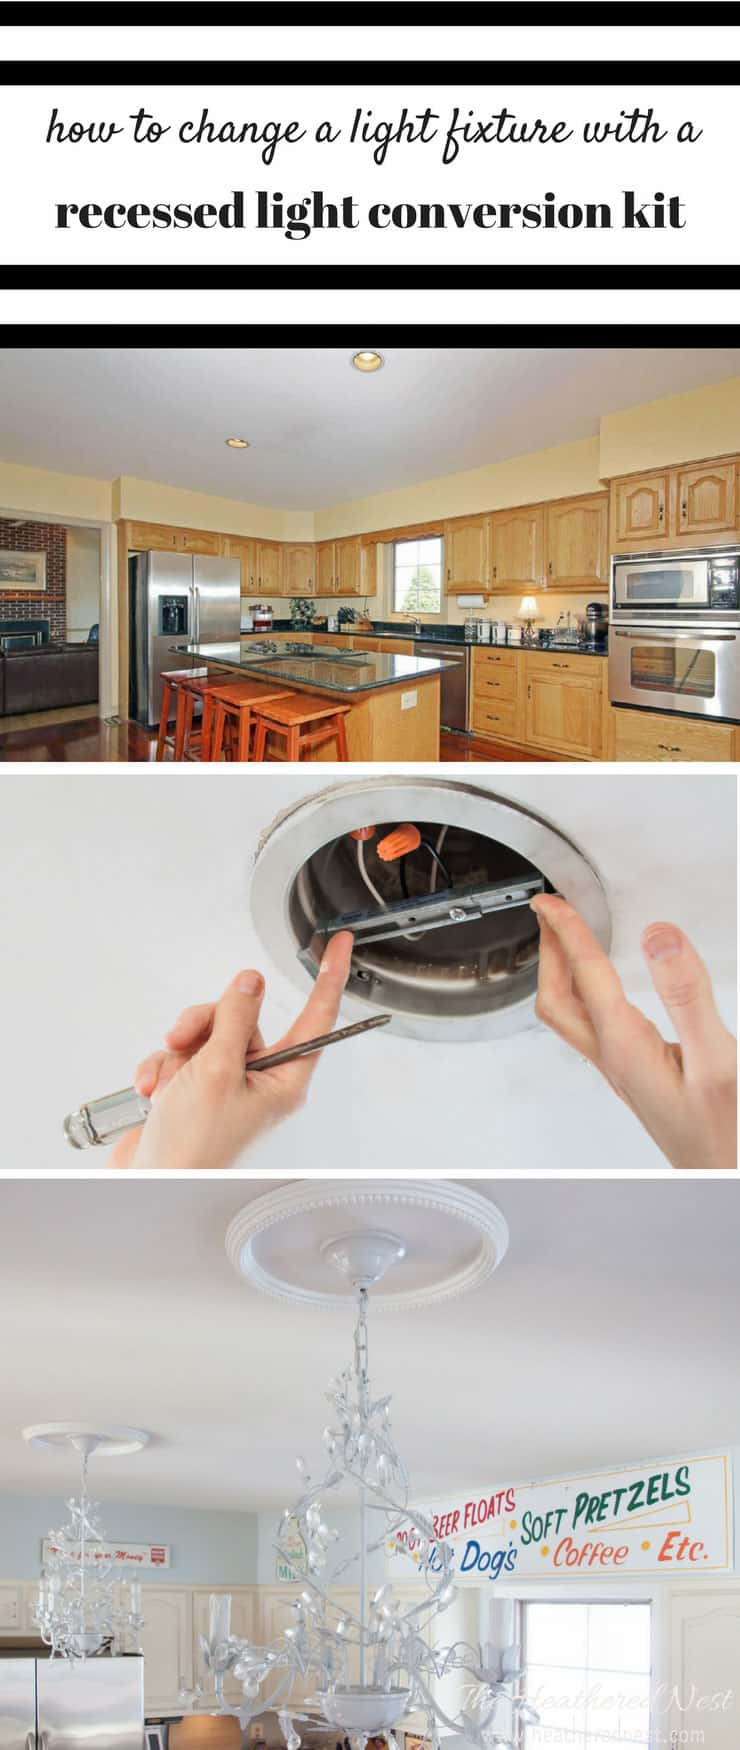 Irresistible How To Change A Light How To Change A Light Fixture Using A Recessed Light Conversion Kit Recessed Light Conversion Kit Westinghouse Recessed Light Conversion Kit Australia Tutorial houzz-03 Recessed Light Conversion Kit